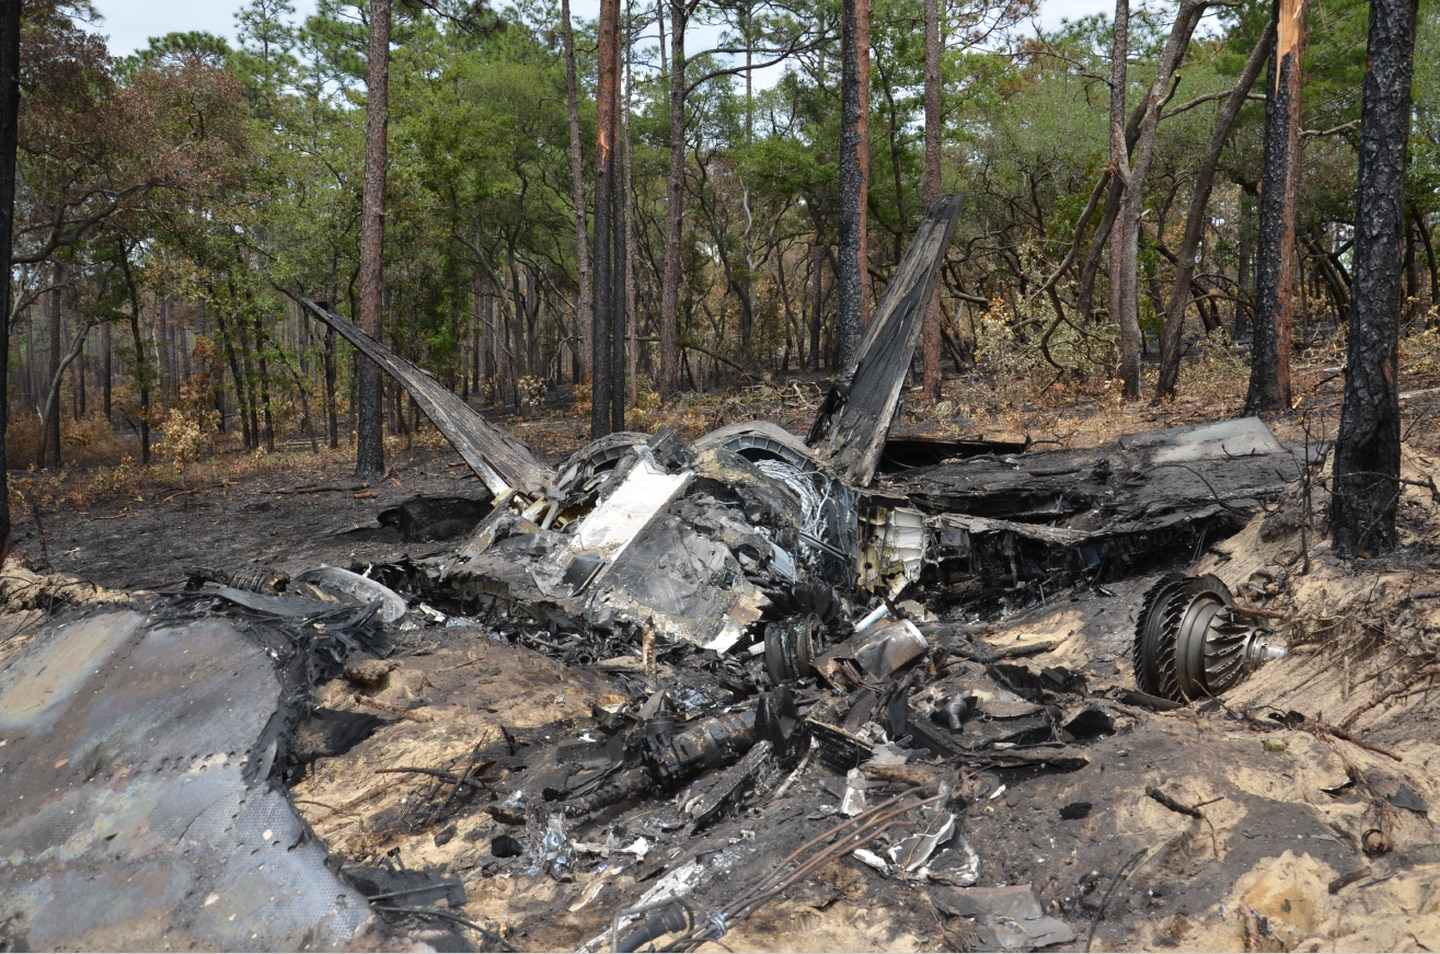 Photos of the wreckage of an F-22 Raptor fighter jet that crashed on May 15, 2020, were included in an Air Force investigation report obtained by Air Force Times via the Freedom of Information Act. (Air Force)